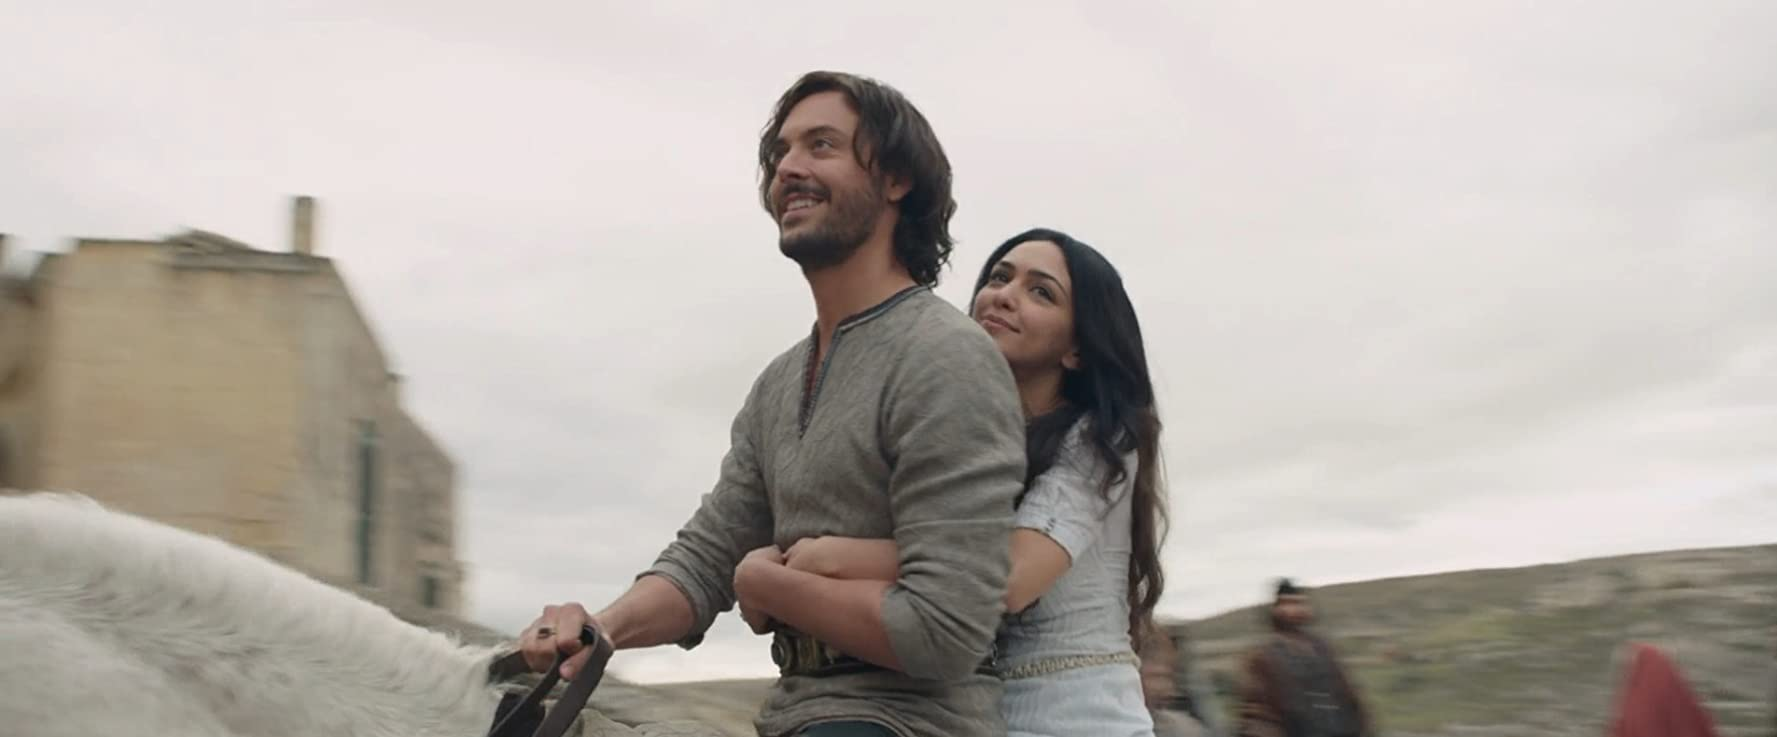 Jack Huston and Nazanin Boniadi in Ben-Hur (2016)